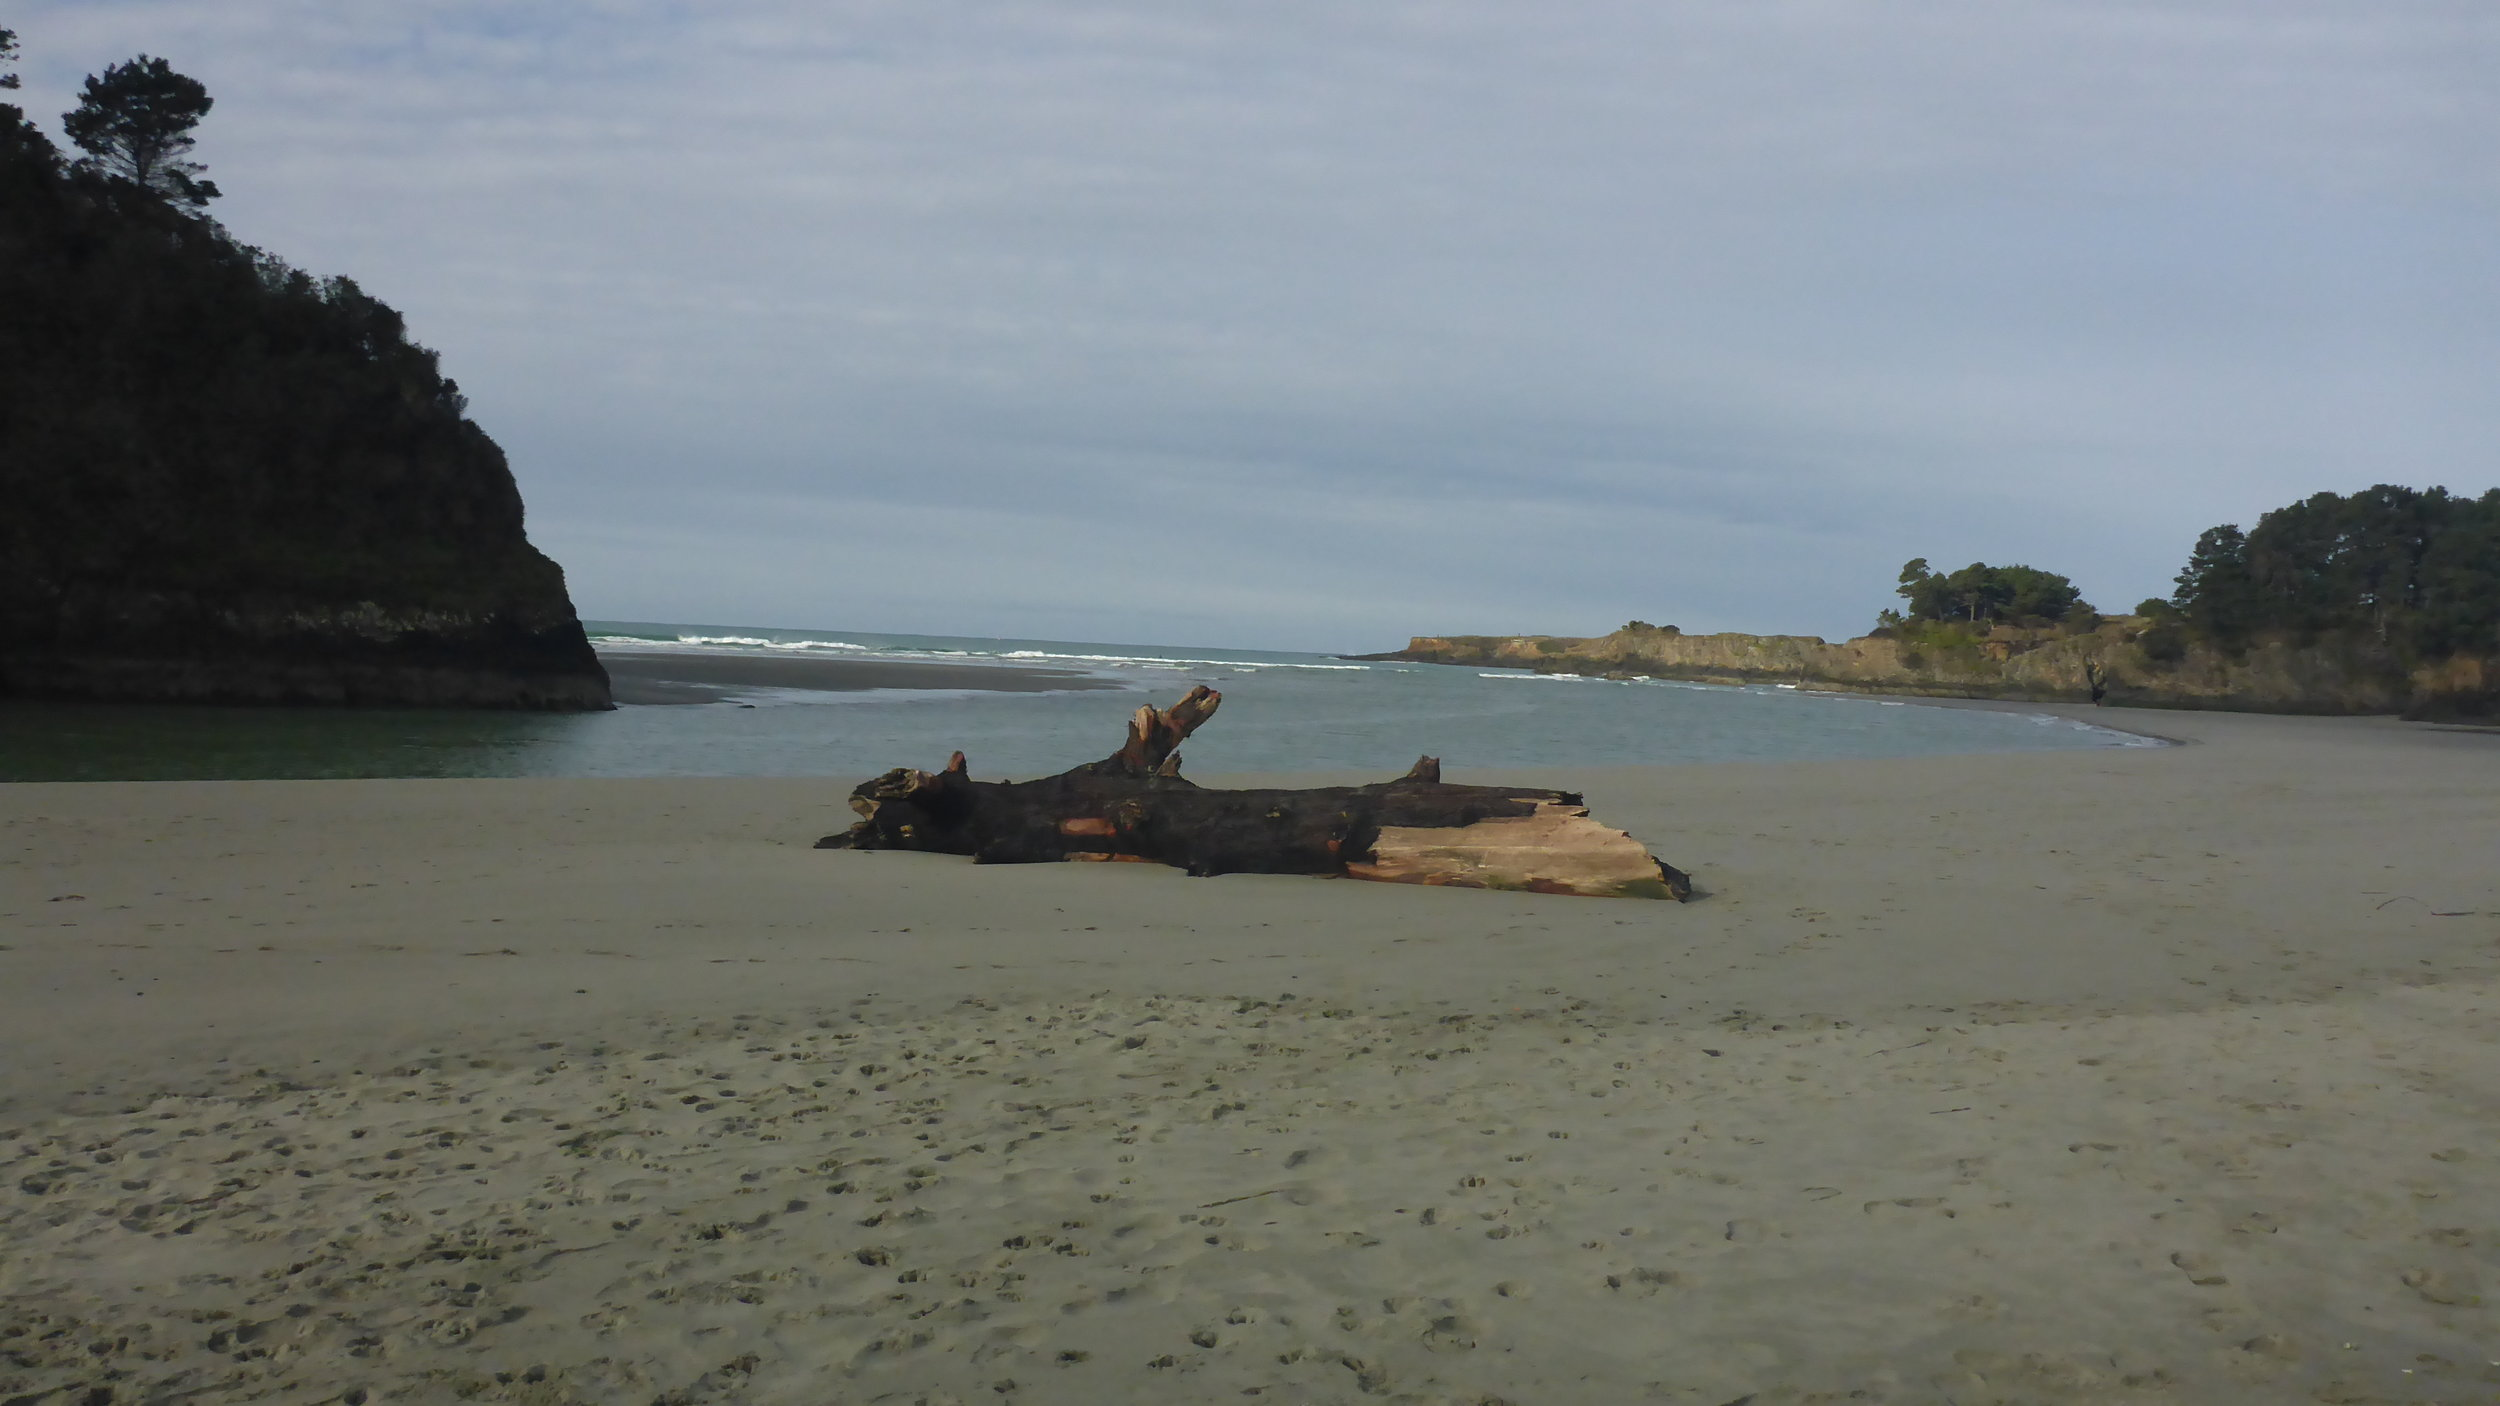 Big River is a beautiful beach for a stroll or a picnic.